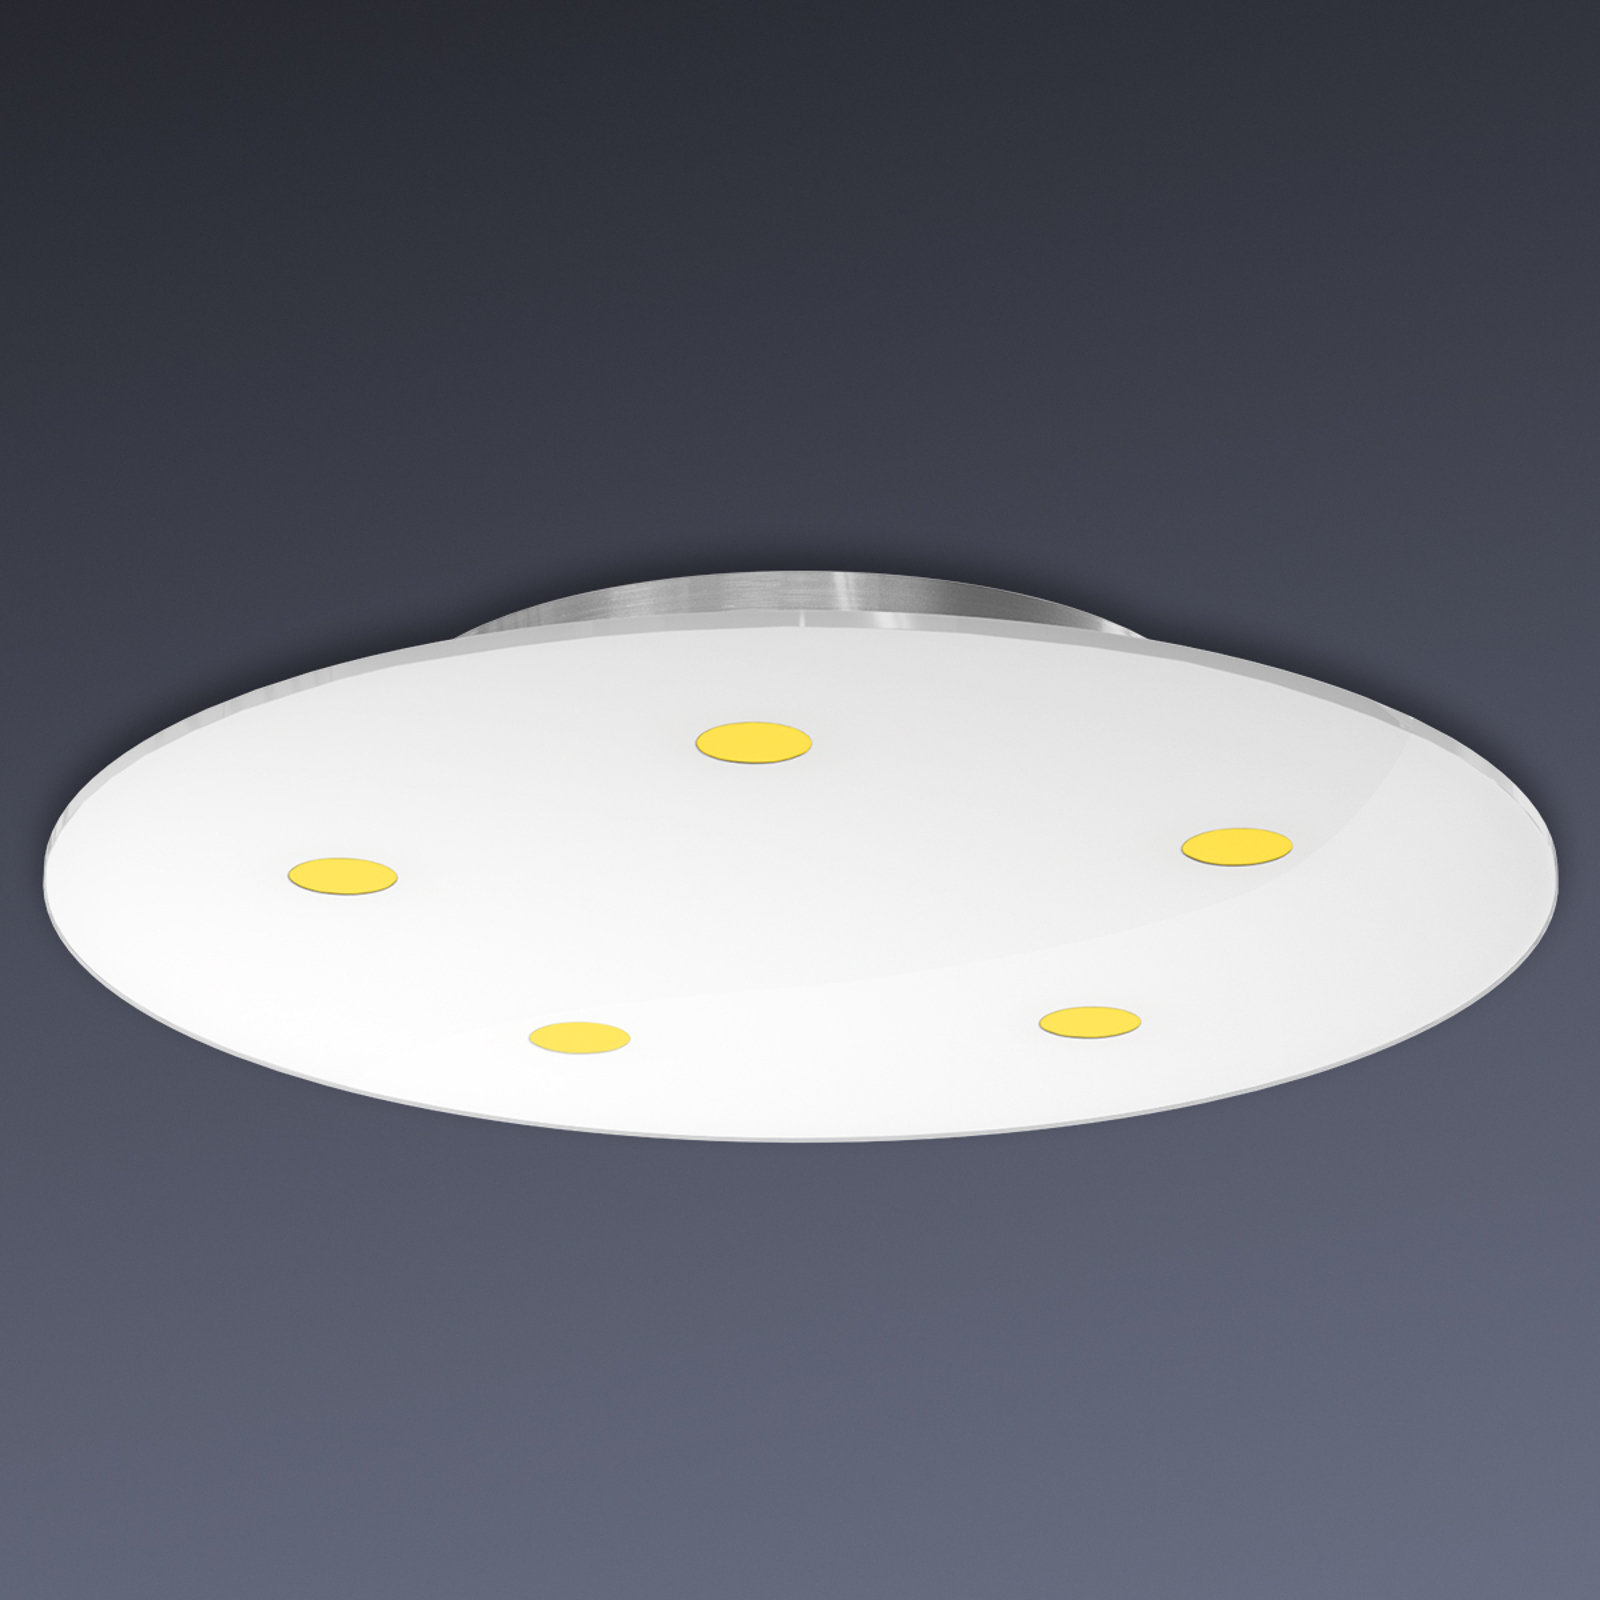 Dimmable LED ceiling light Sunia_3025242_1